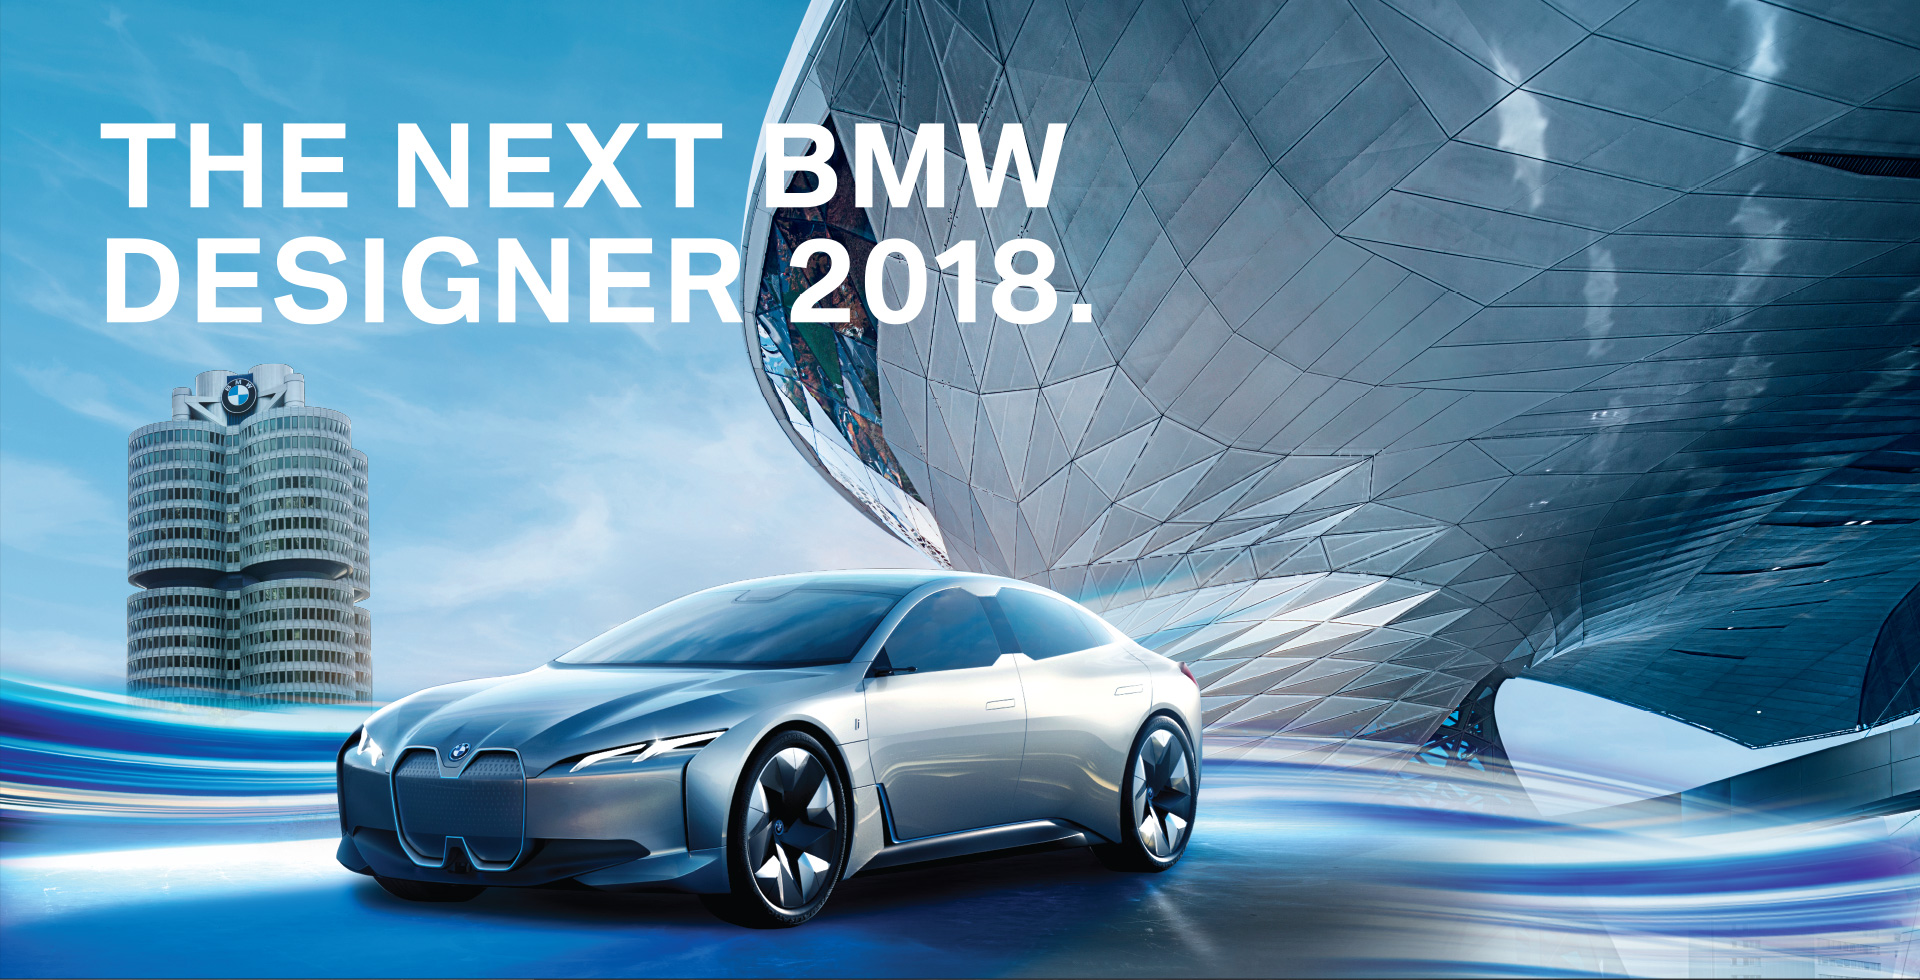 The Next BMW Designer 2018